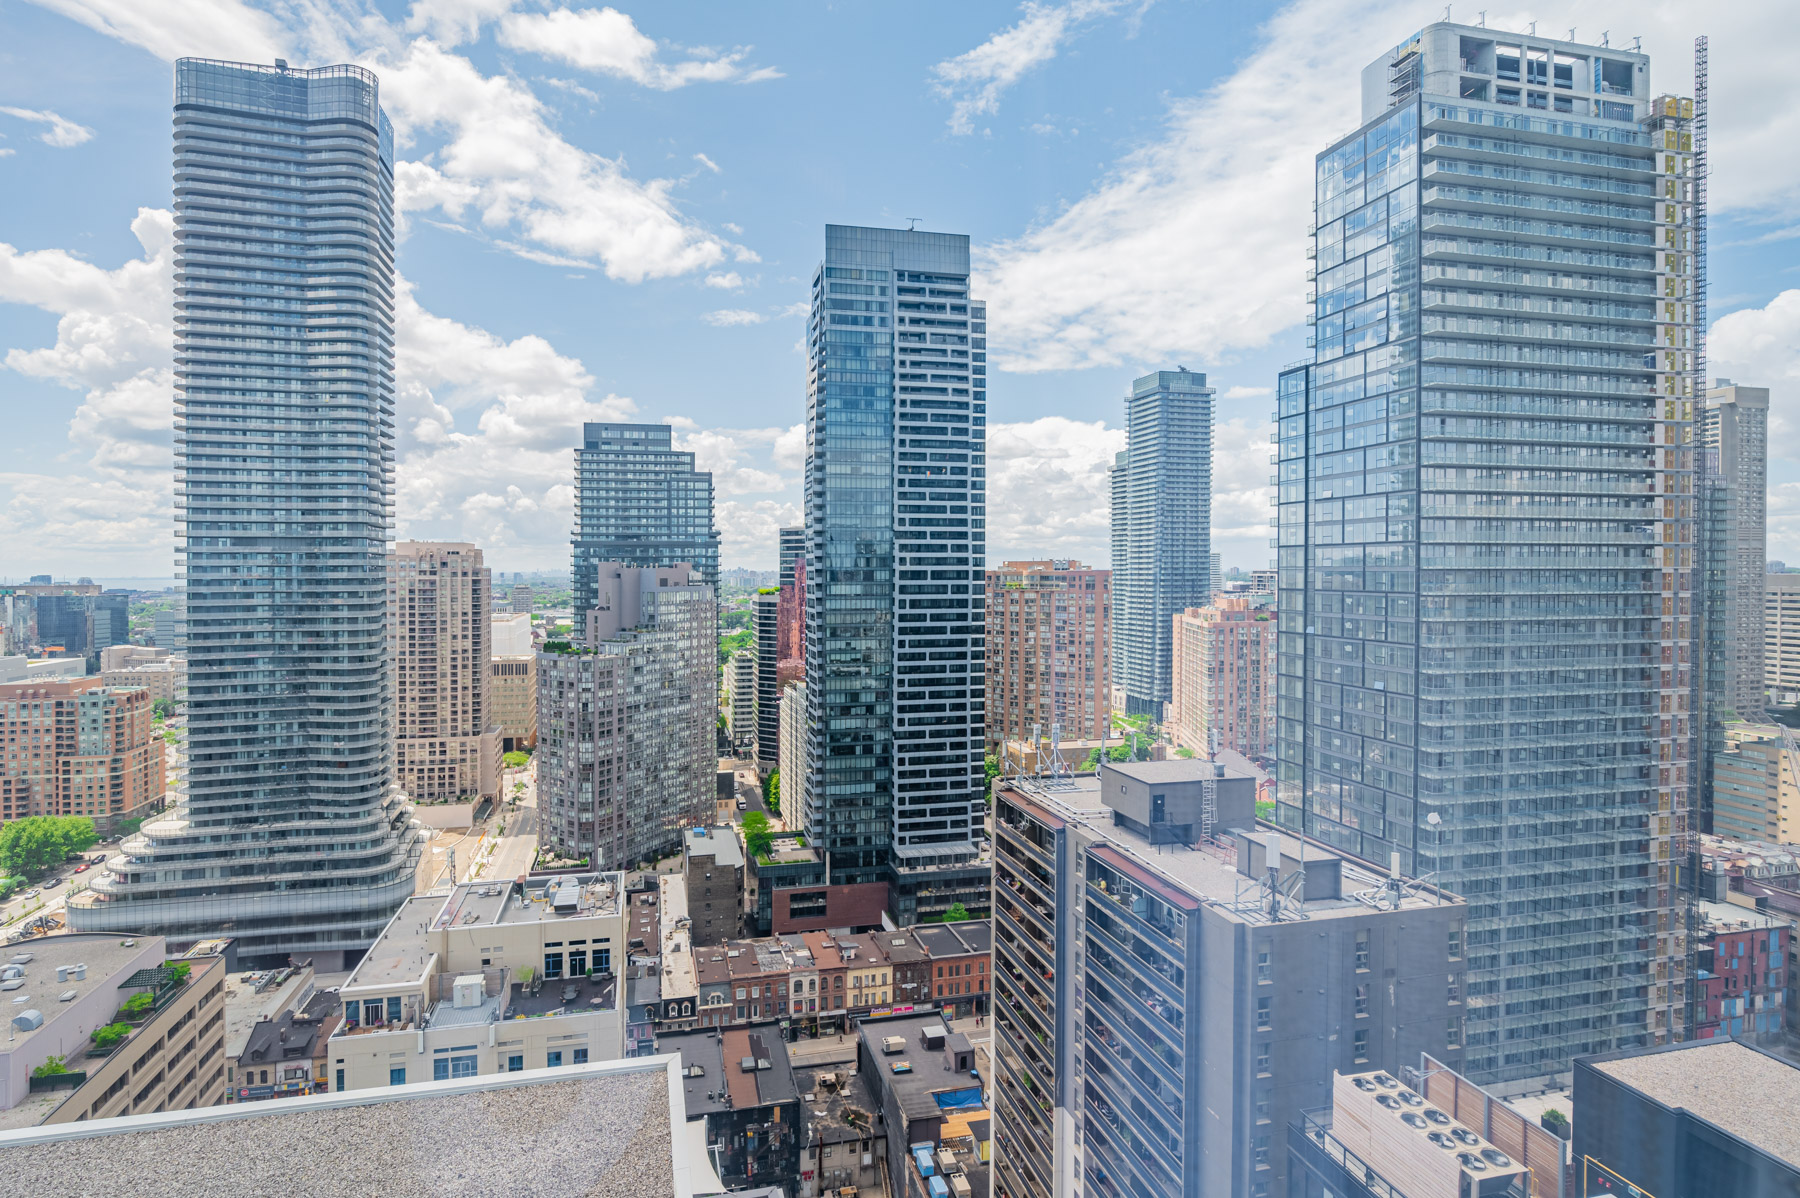 View of Church-Yonge Corridor buildings from 28 Wellesley St Unit 3009 balcony.